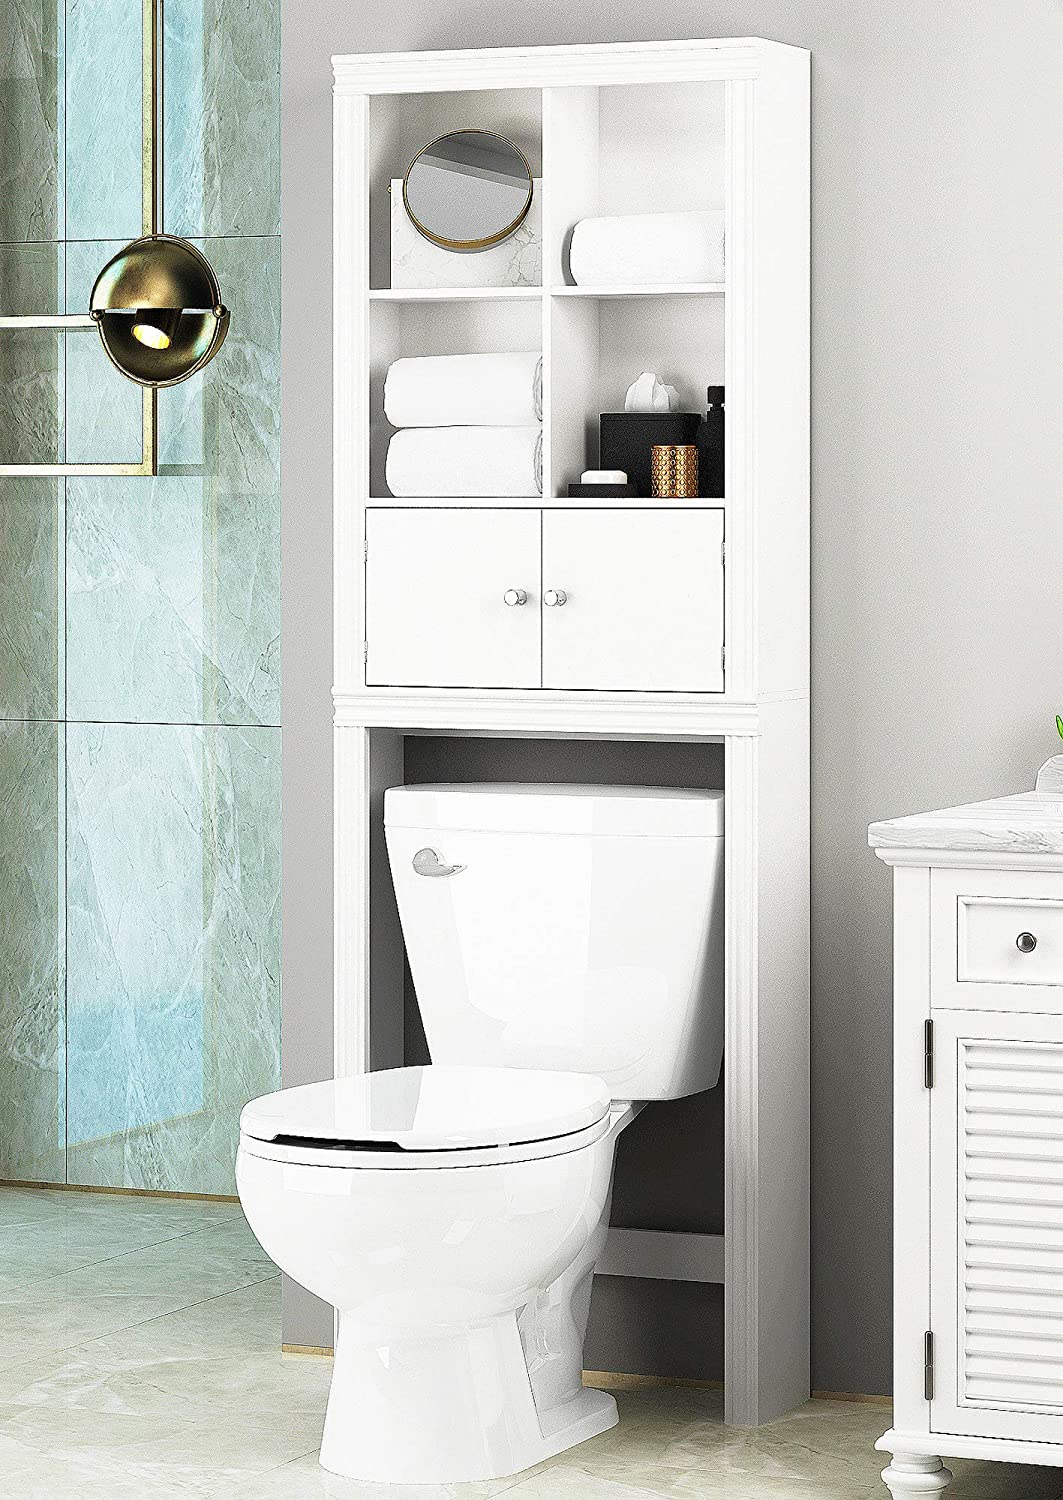 over the toilet storage - 22 fabulous ideas for organizing your small bathroom